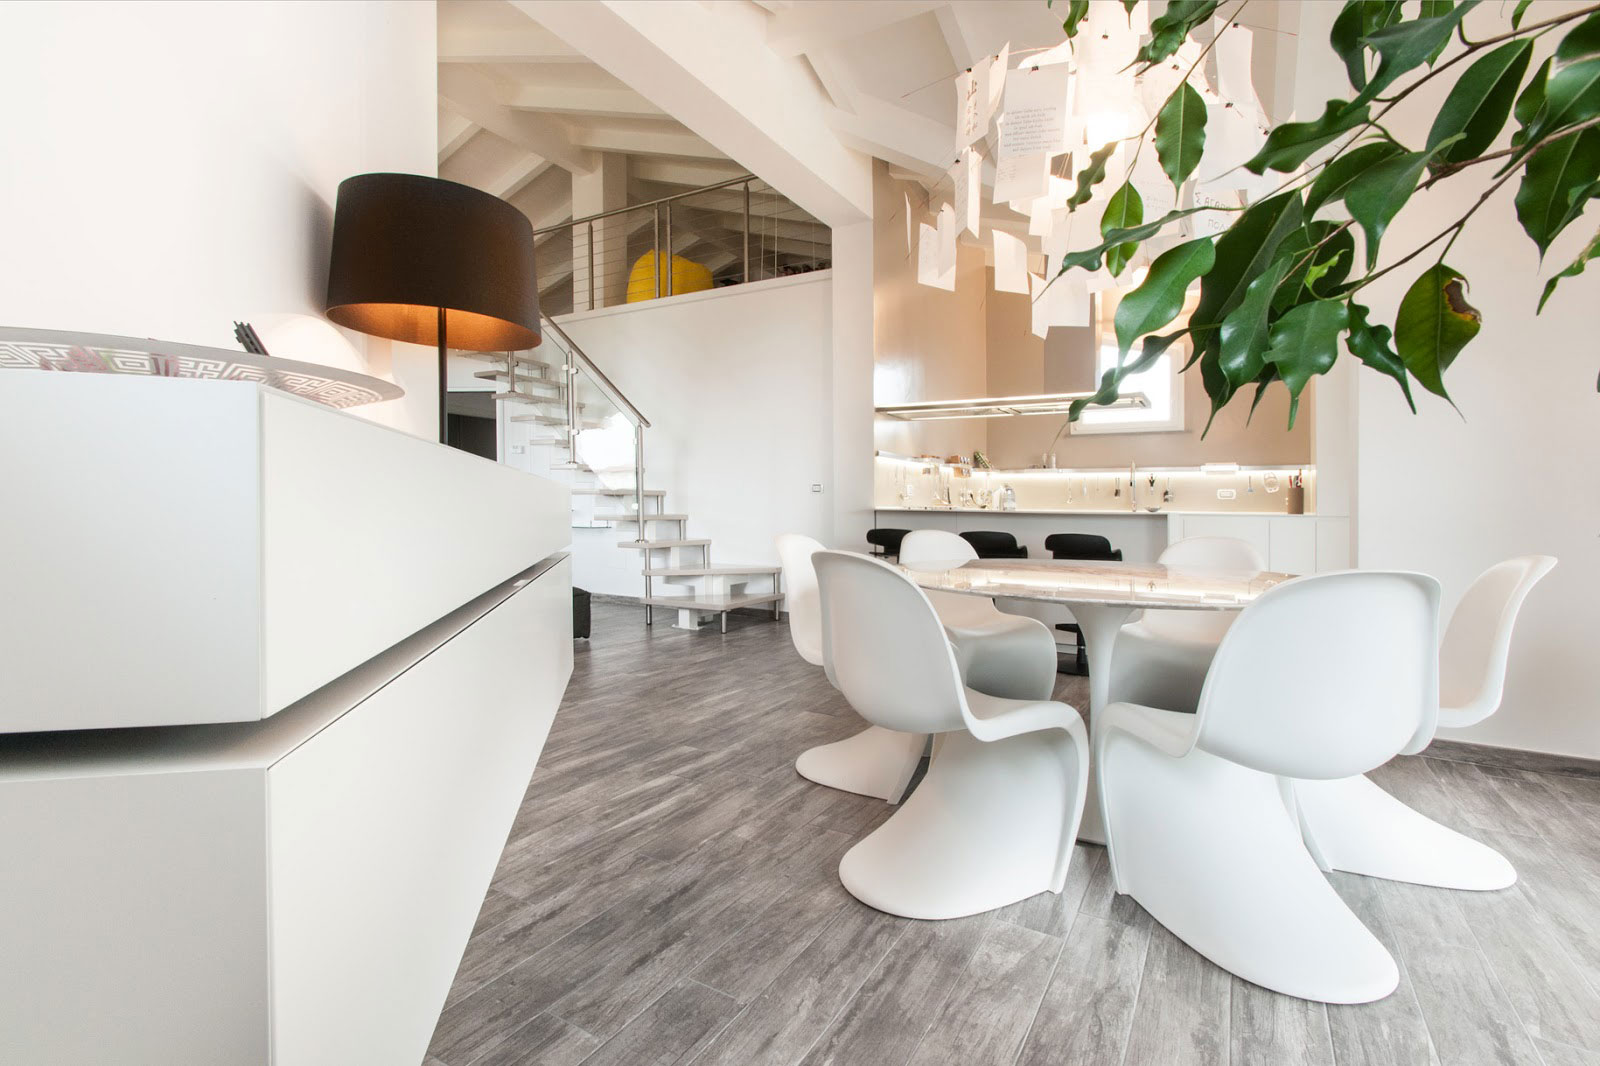 Chic Penthouse in Pisa, Italy by Lorenzo Mannini-08